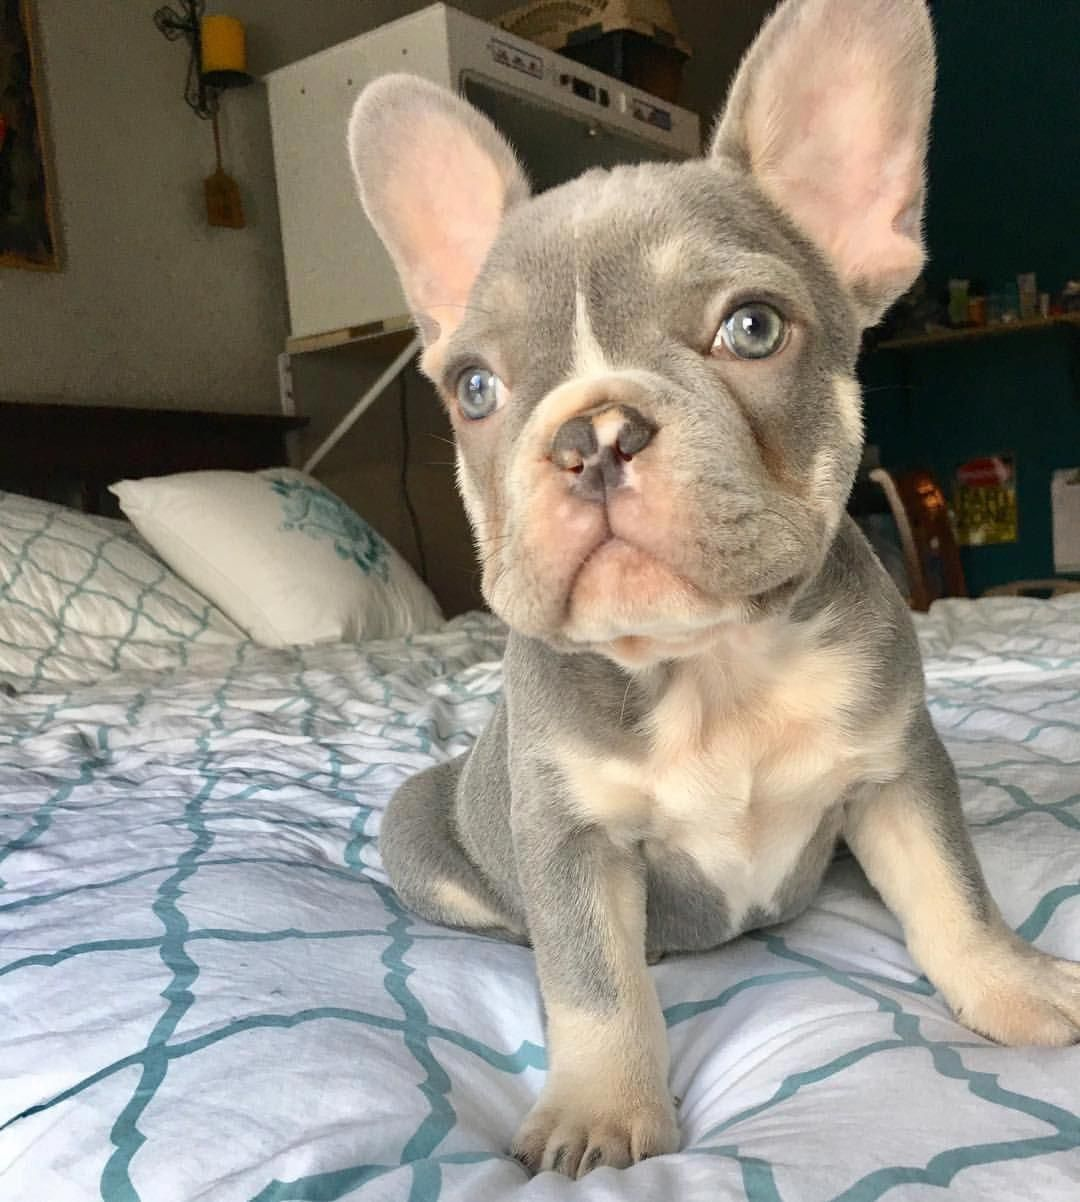 Find out more on the friendly frenchie health